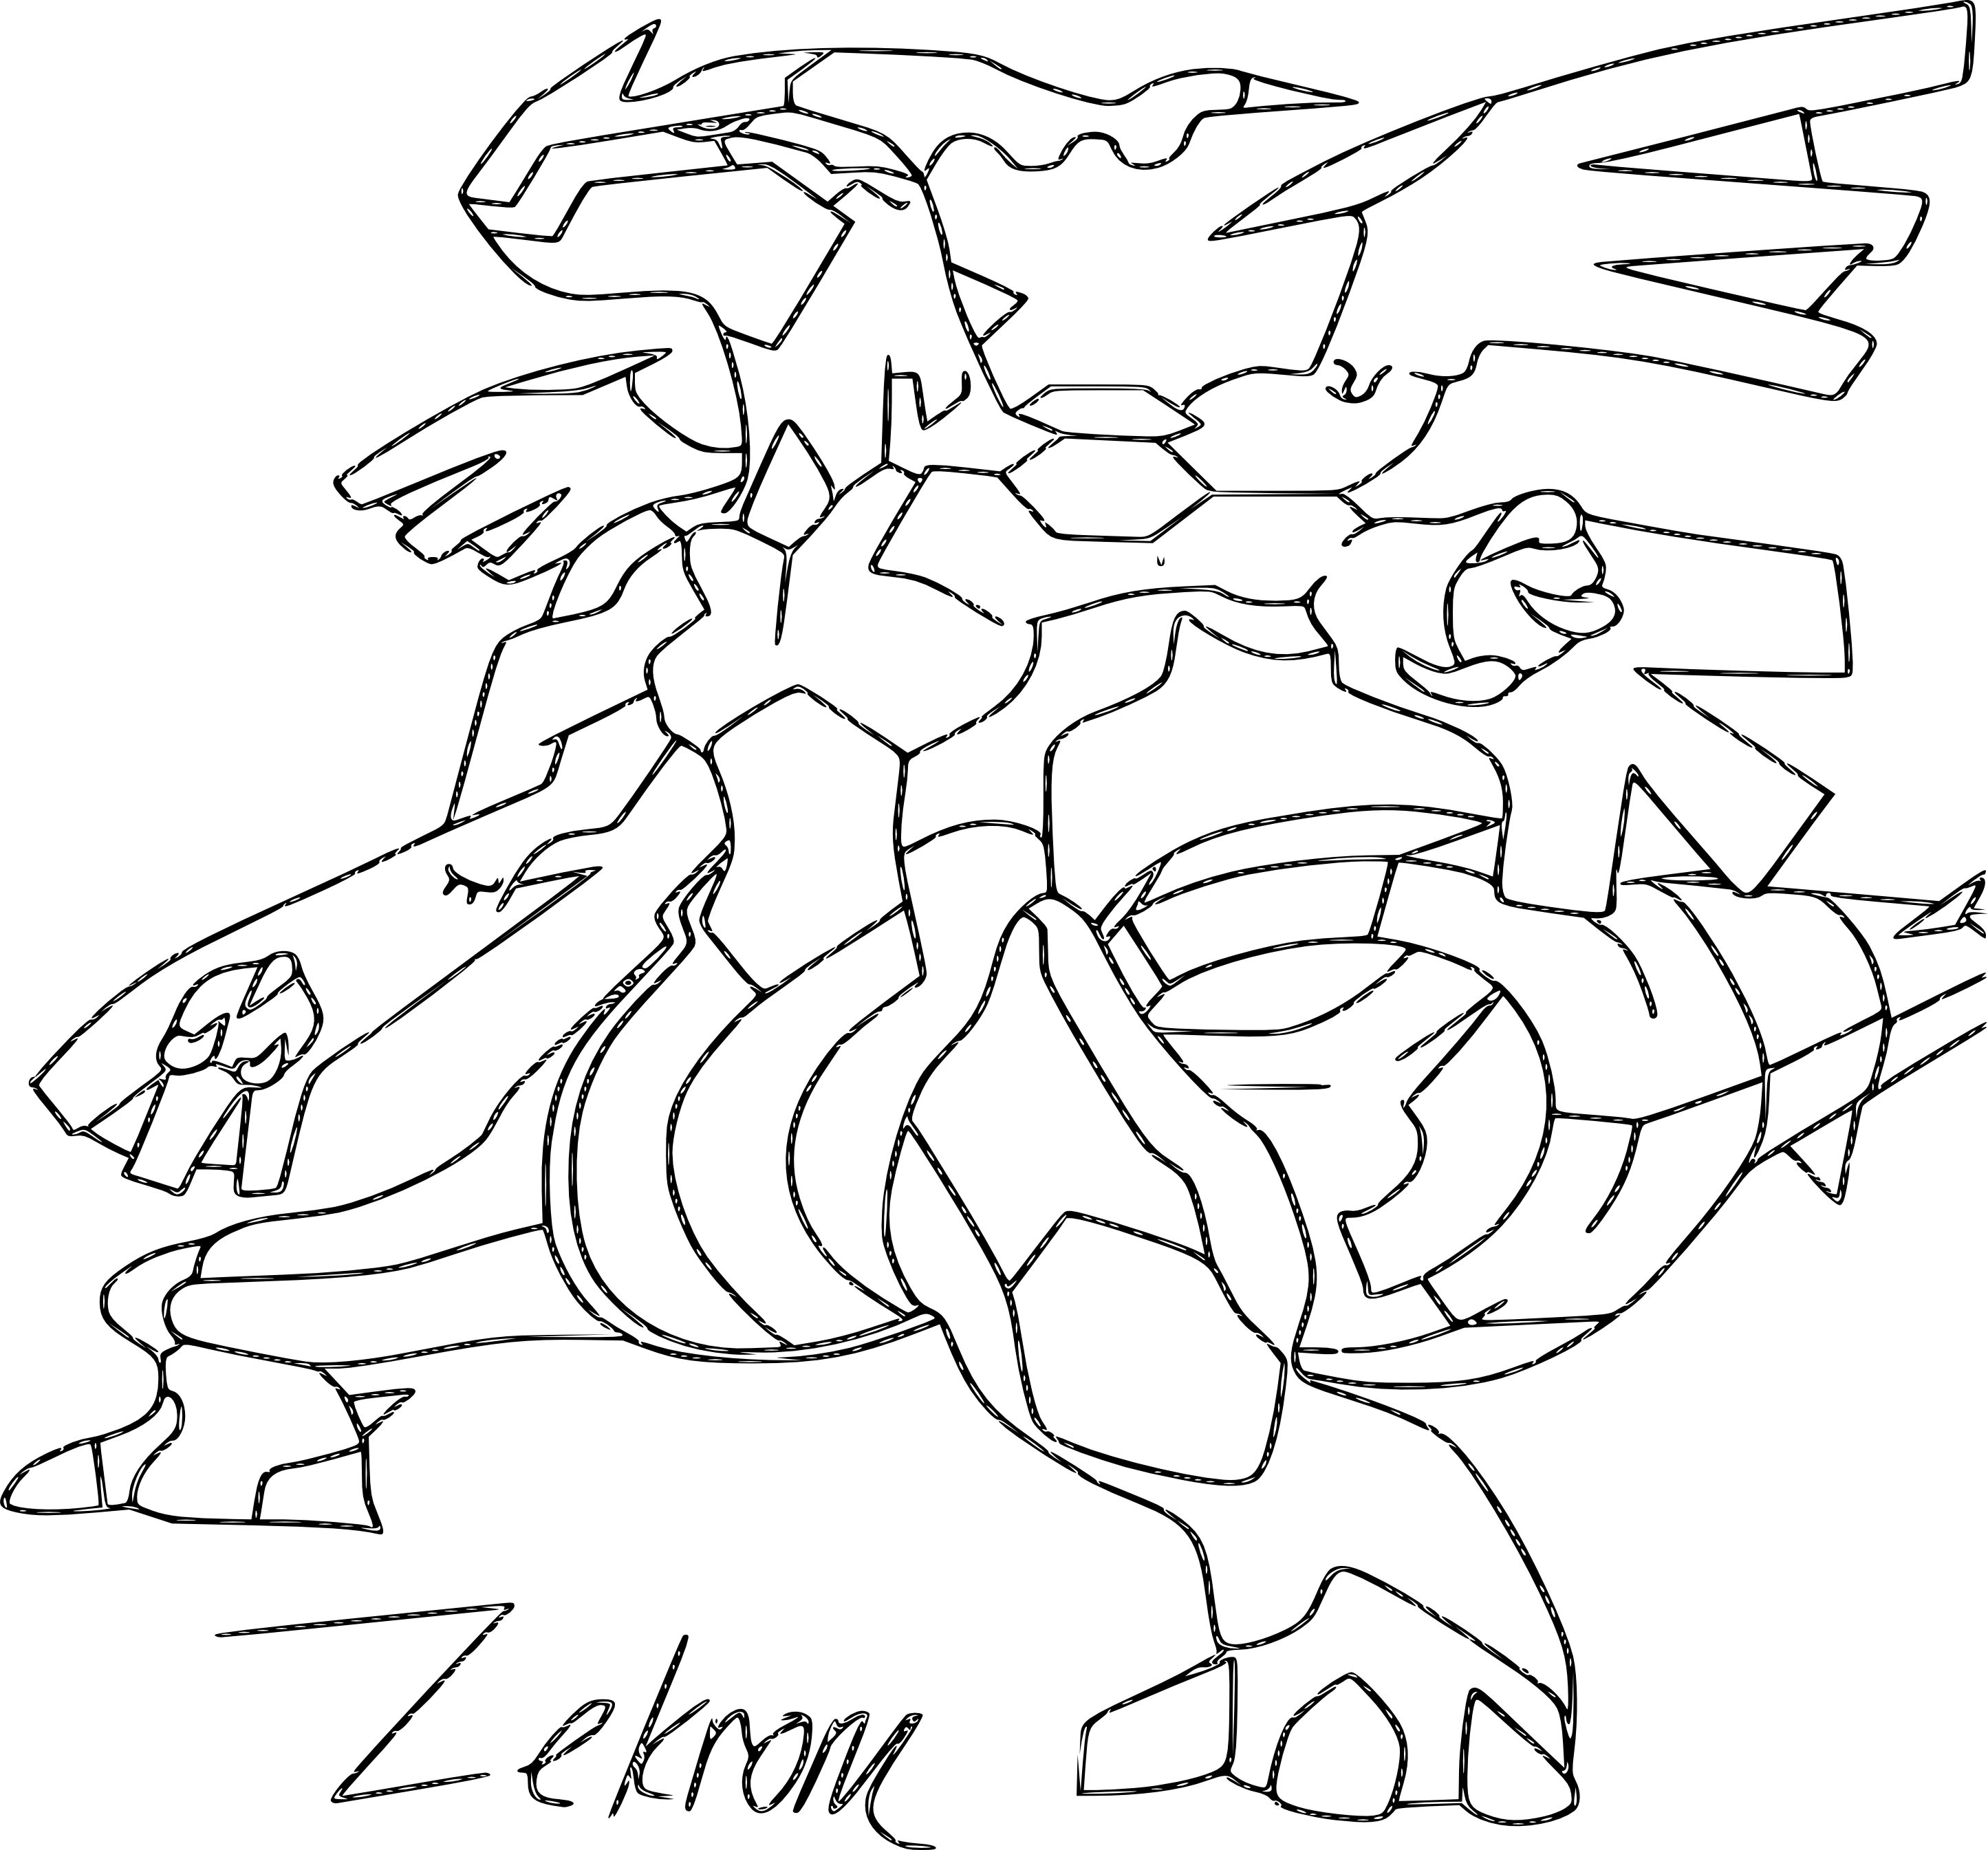 Zekrom coloriage du pokemon zekrom imprimer et colorier - Evolution pokemon legendaire ...